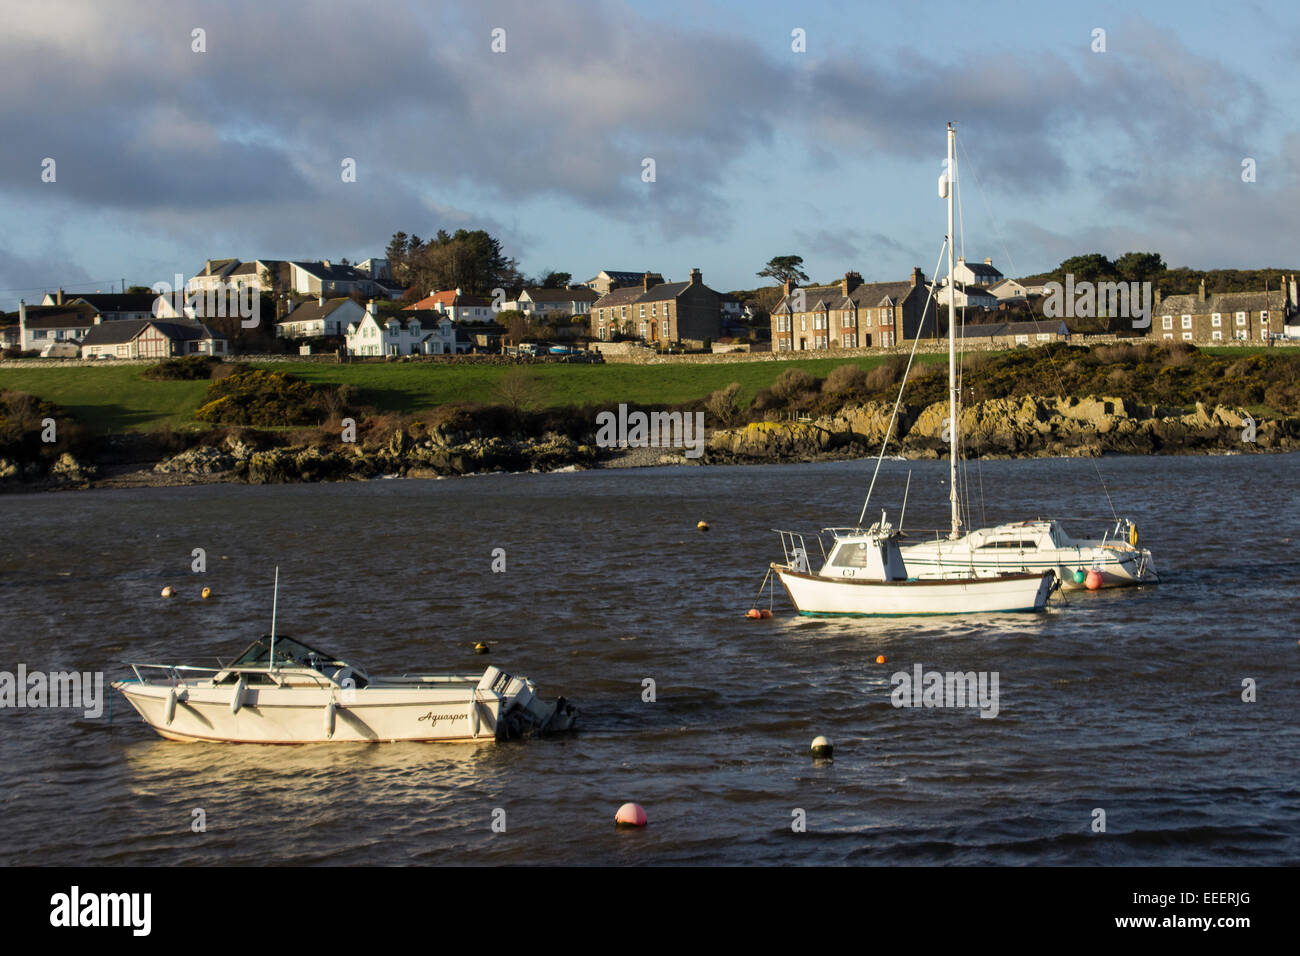 A small local harbour in Dumfries and Galloway - Stock Image